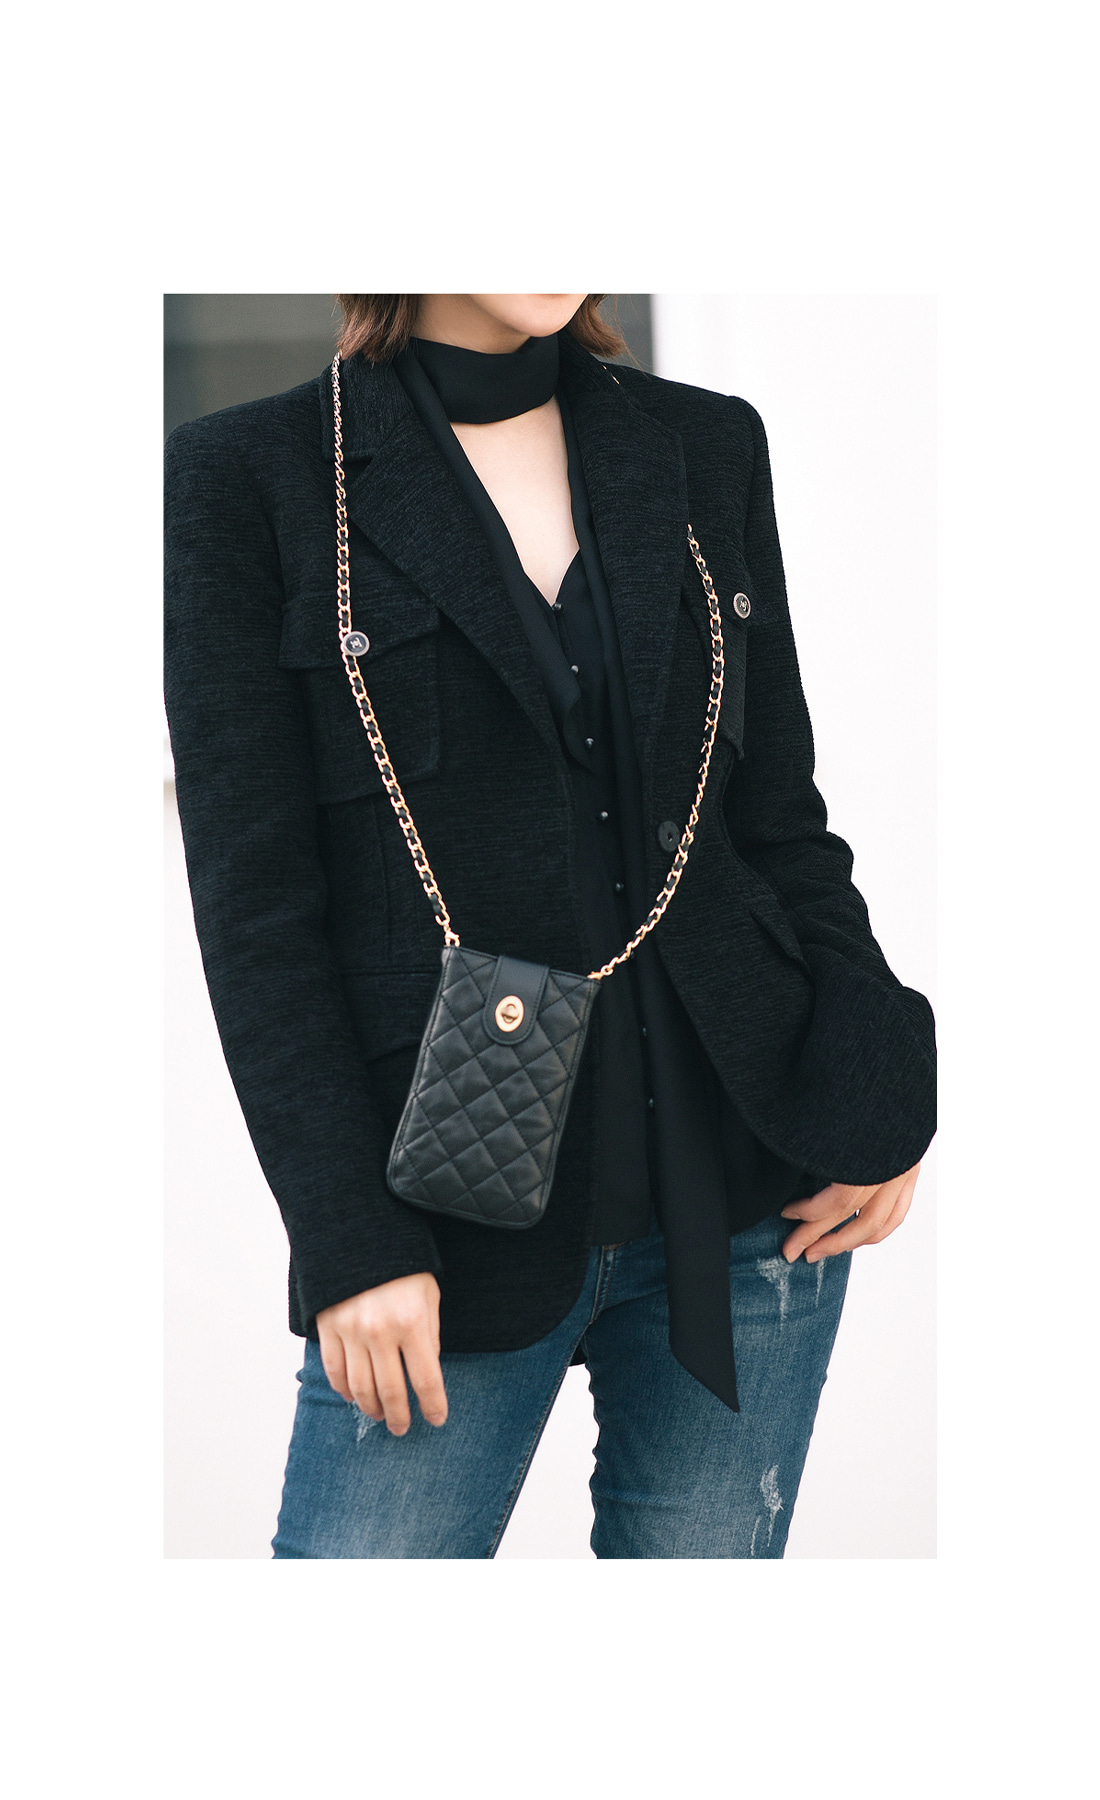 CLASSIC CHAIN MINI CROSS BAG